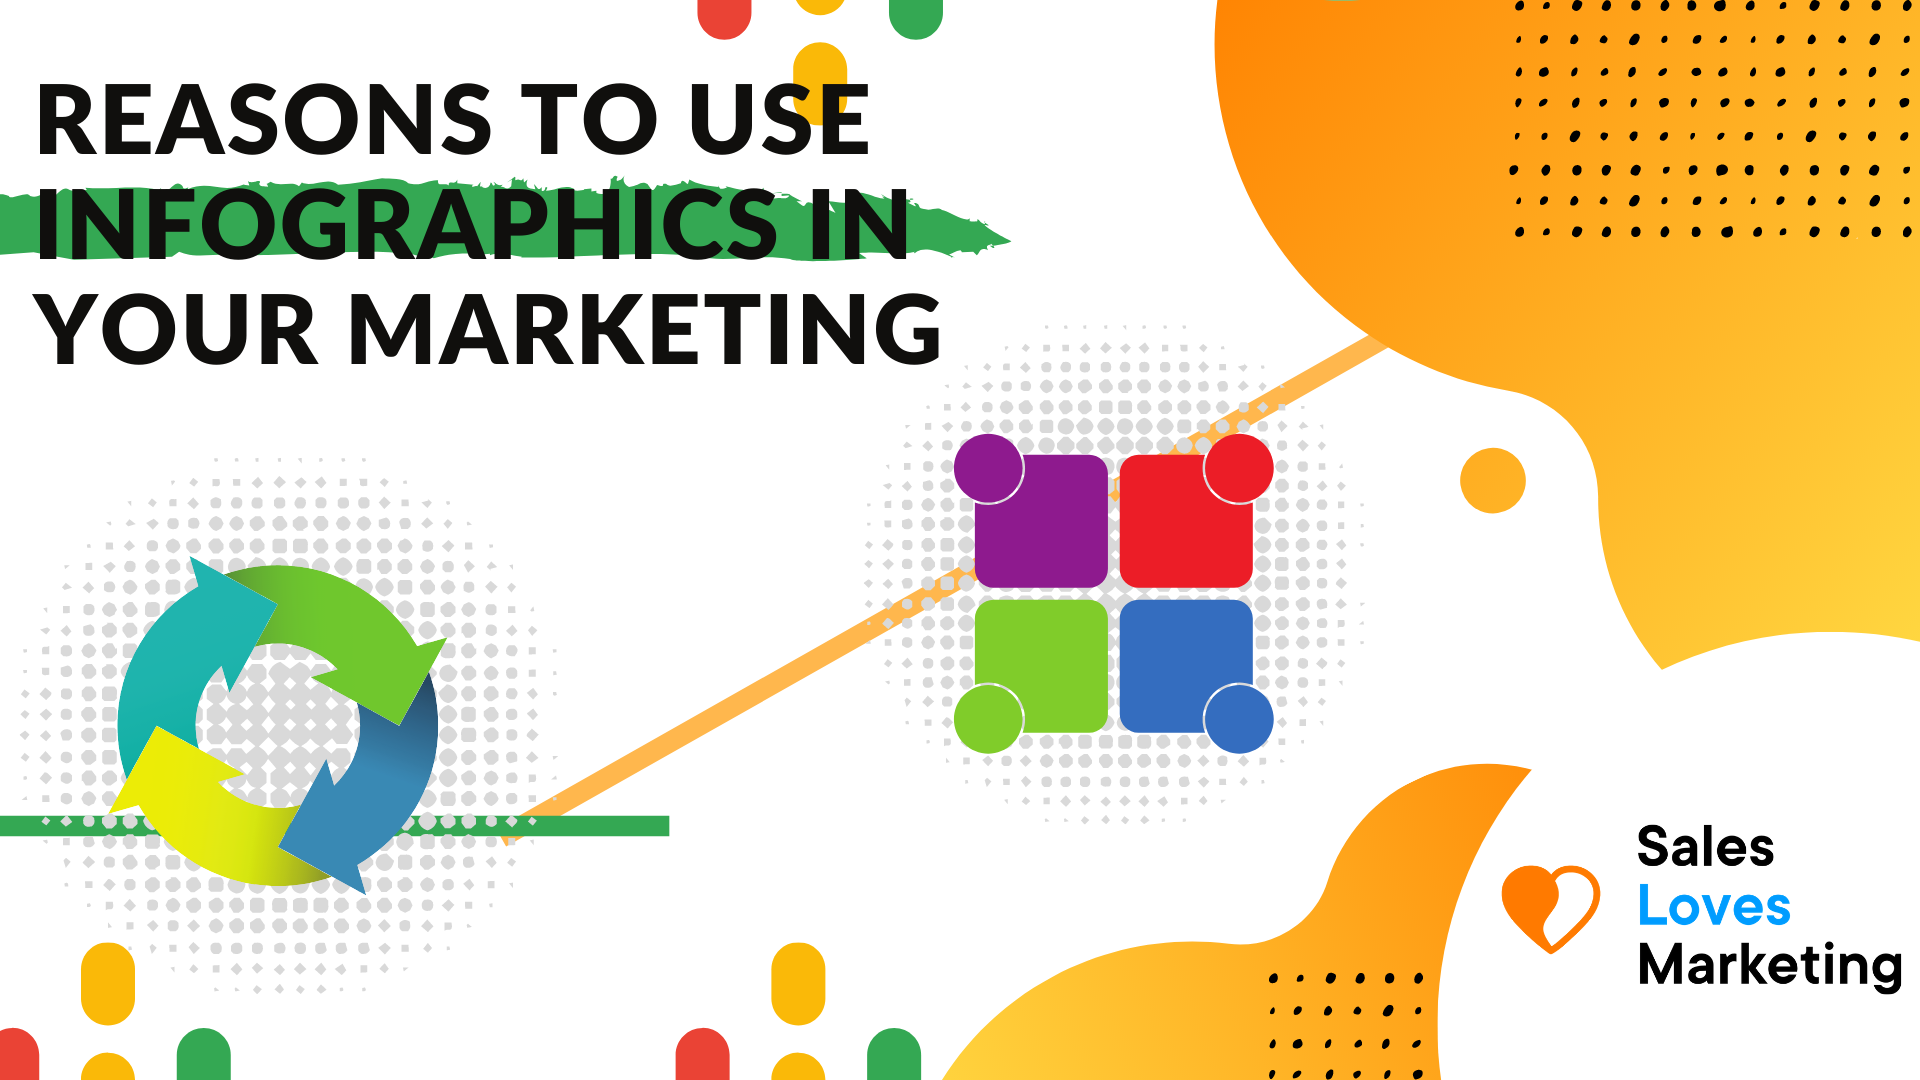 Why should you use Infographics, see here 10 reasons on why you should include infographics inside your marketing